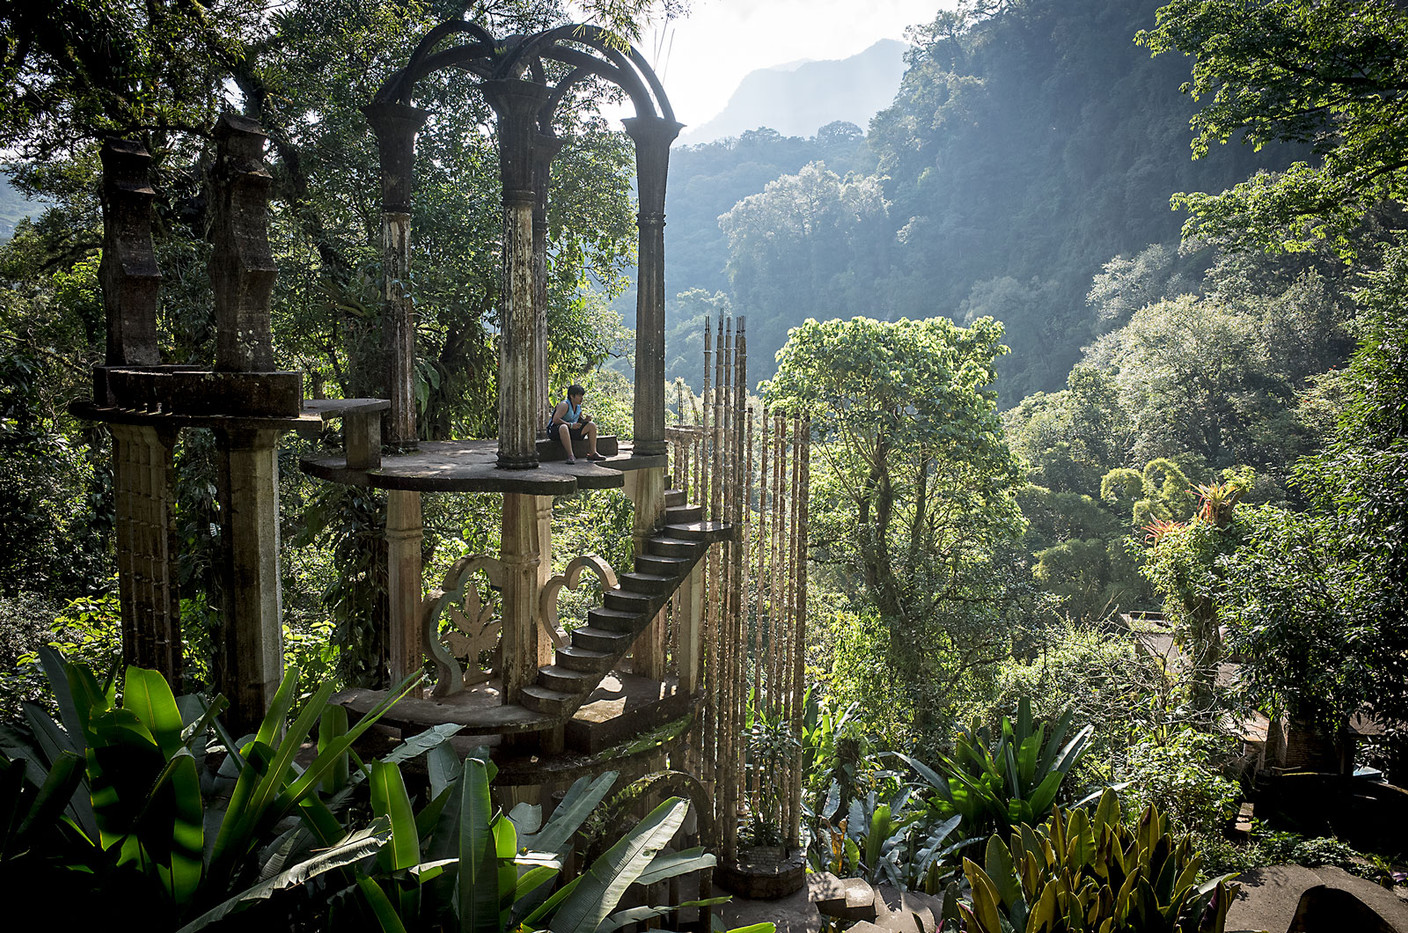 A visitor to Las Pozas in Xilitla waits atop a surrealist structure while his friends take a picture. The park was the vision of British poet Edward James, who was deeply interested in surrealism. The park was purchased from the James estate by a foundation which now overseas the 80 acres of natural waterfalls and concrete structures.